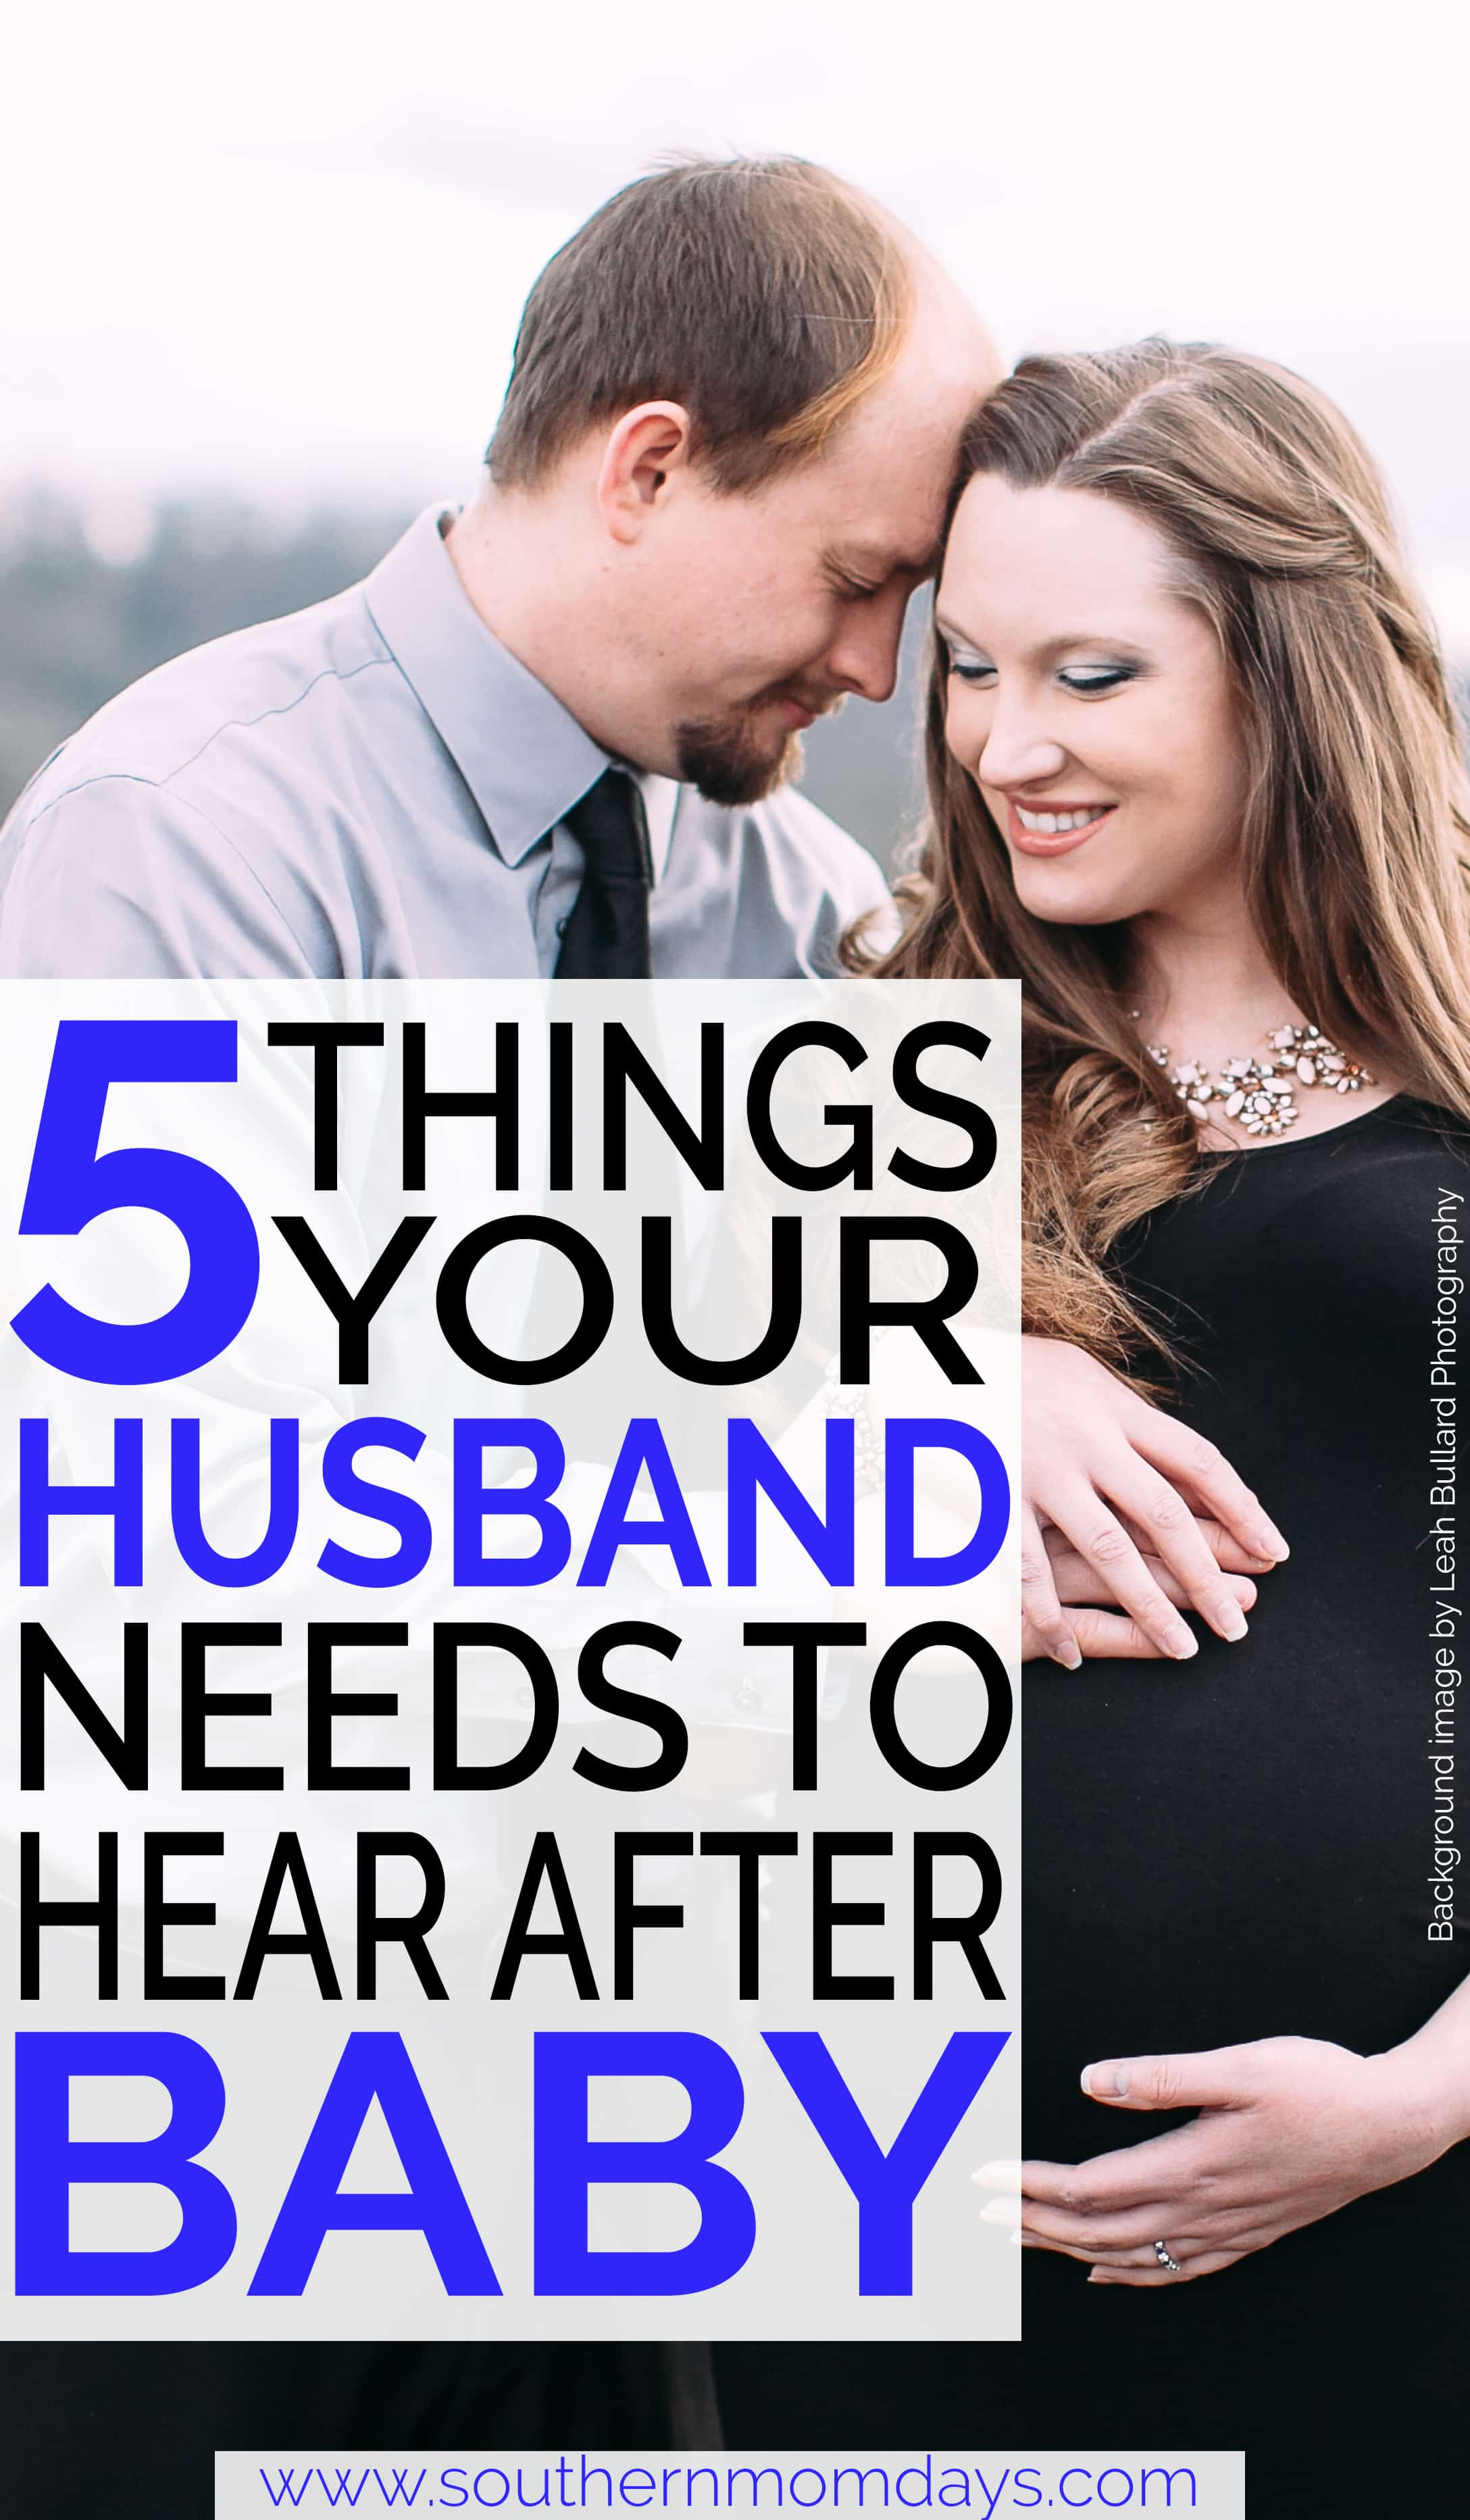 Five Things Your Husband Needs to Hear After Baby, featured on the Southern Momdays blog, with images by Leah Bullard Photography